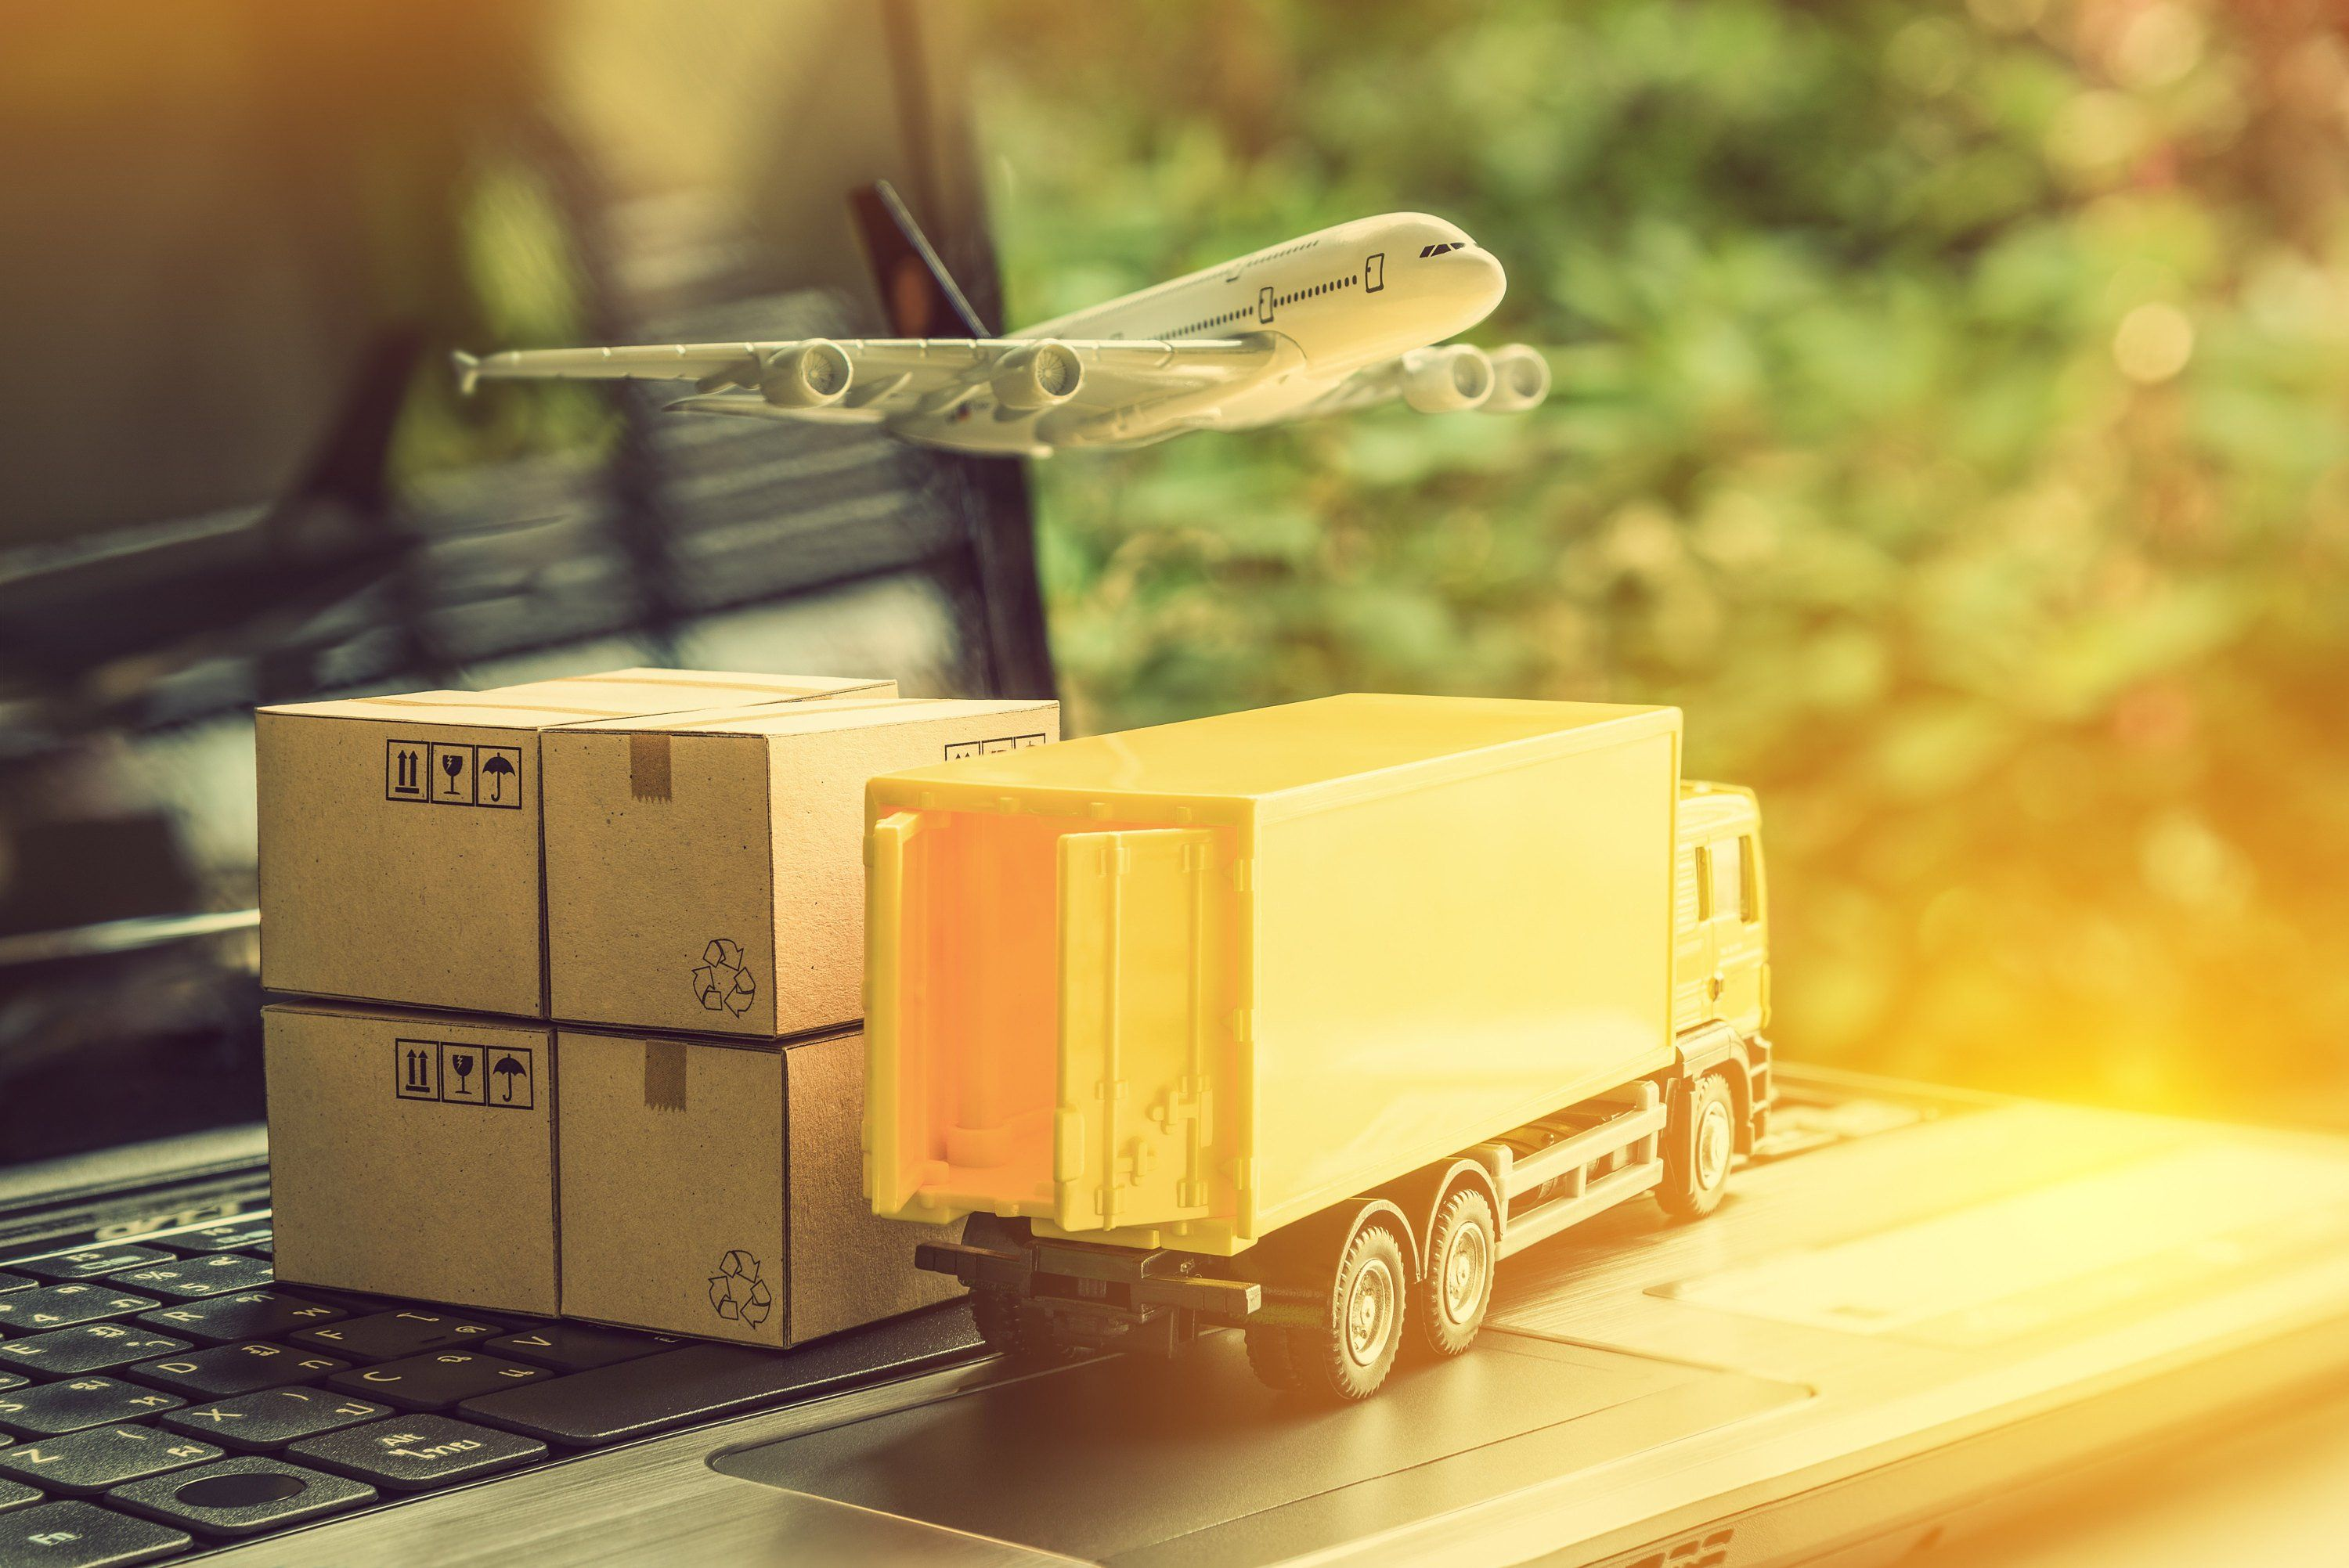 Value of visibility in the 21st century supply chain. (As